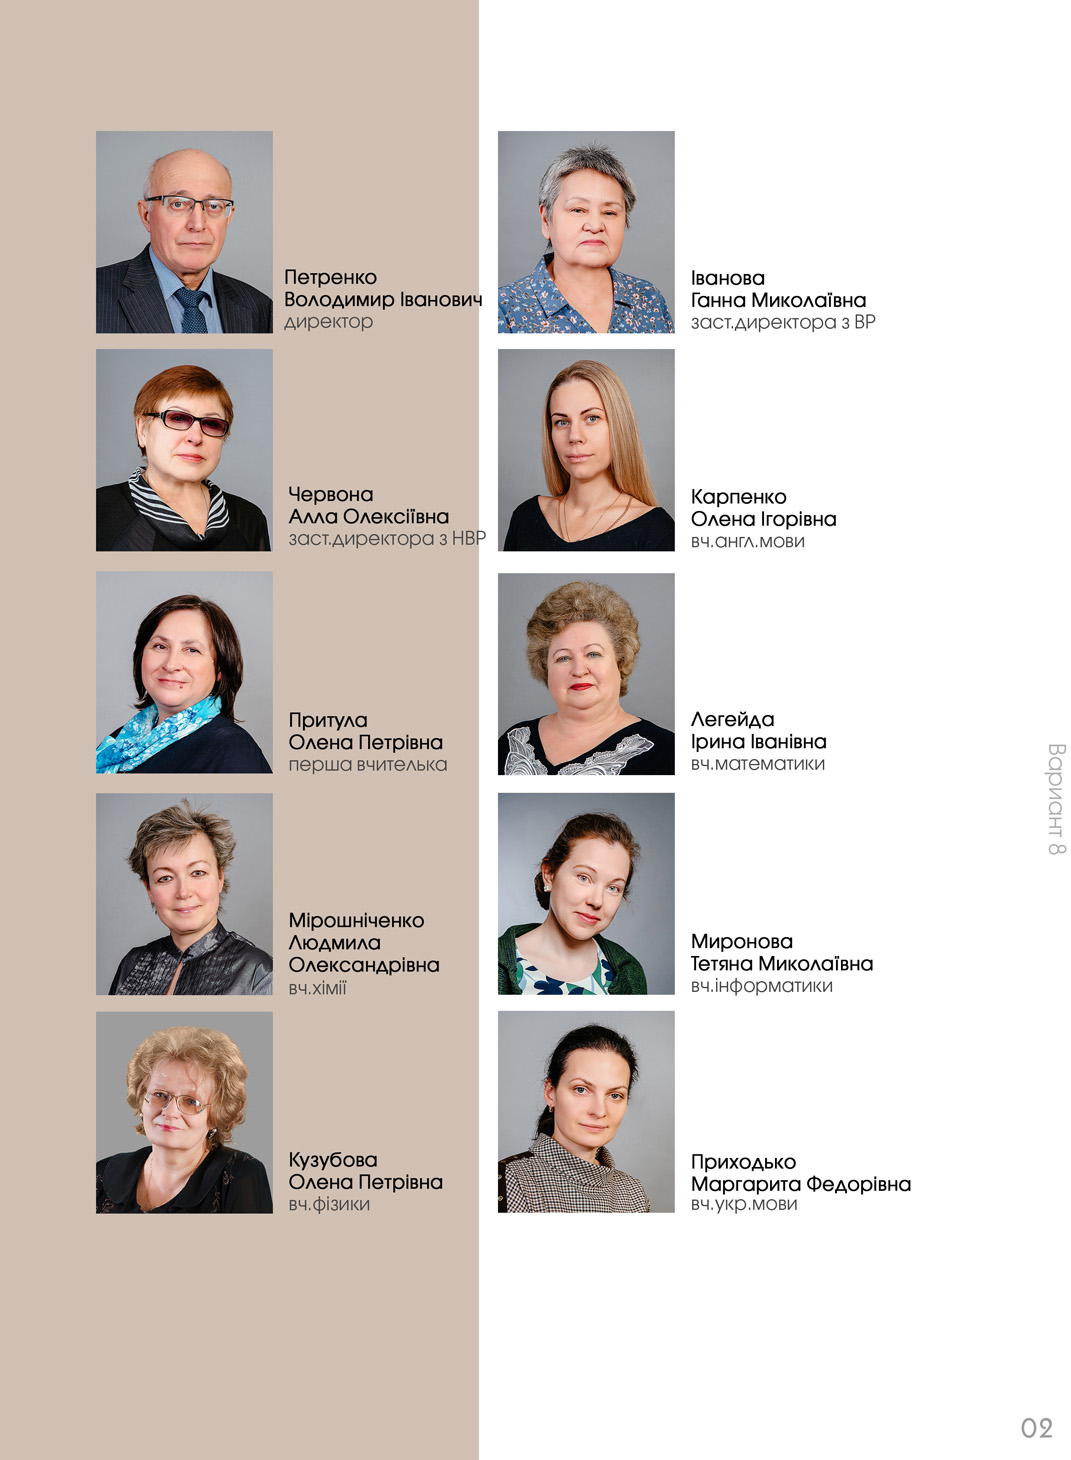 https://school-photo.com.ua/wp-content/uploads/2019/09/02-copy-1.jpg